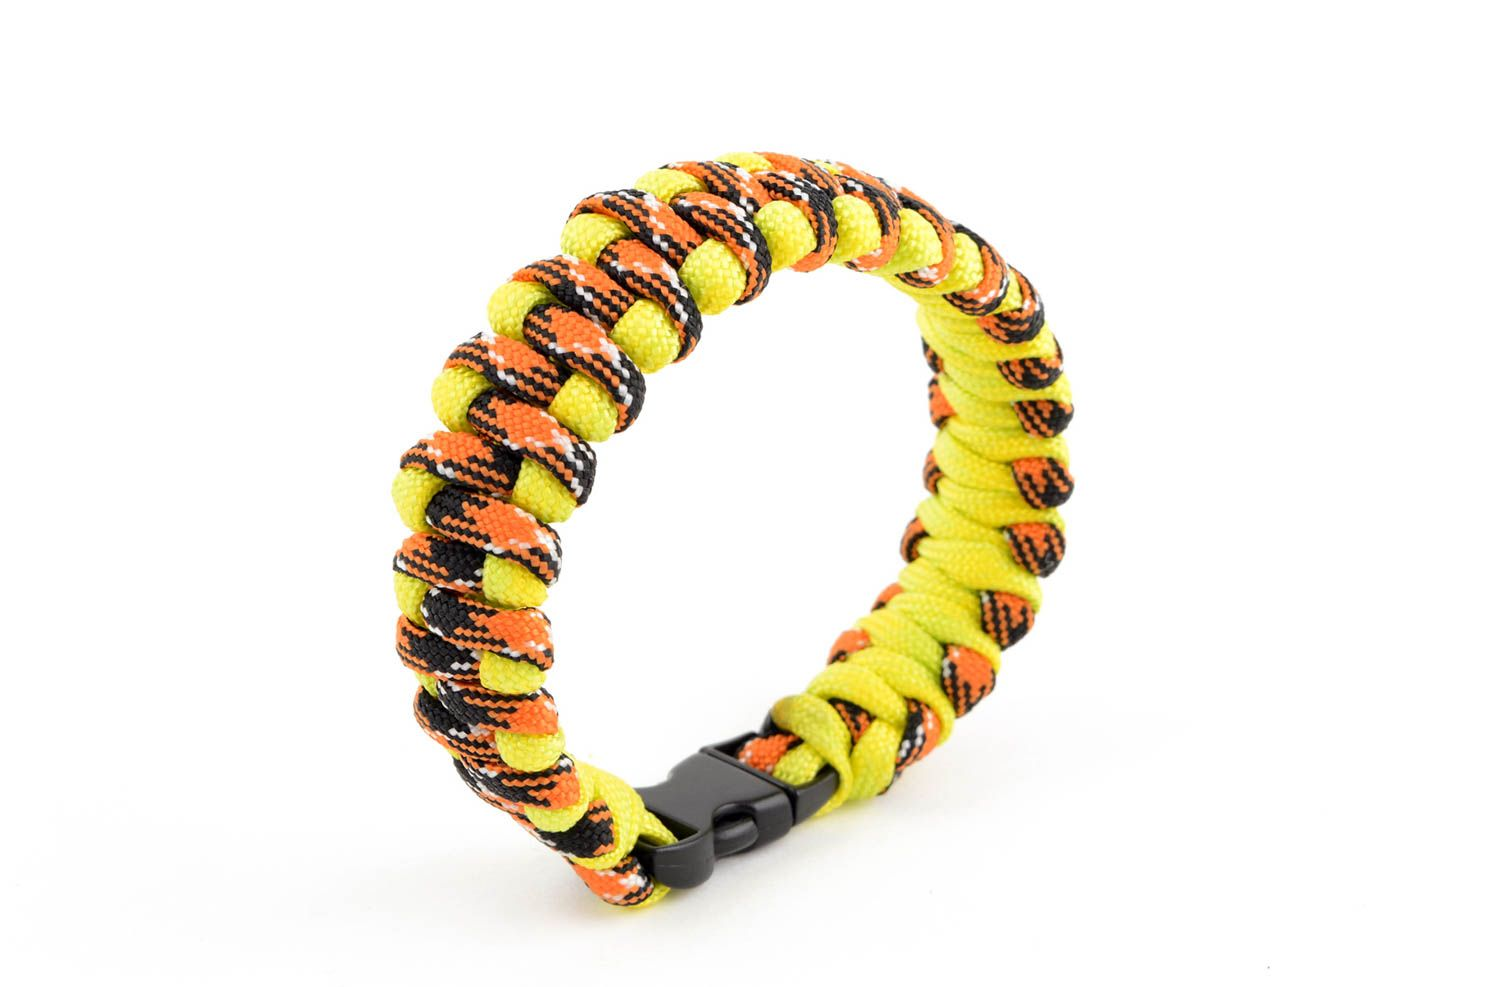 Handmade paracord bracelet parachute cord bracelet hiking equipment cool gifts photo 4